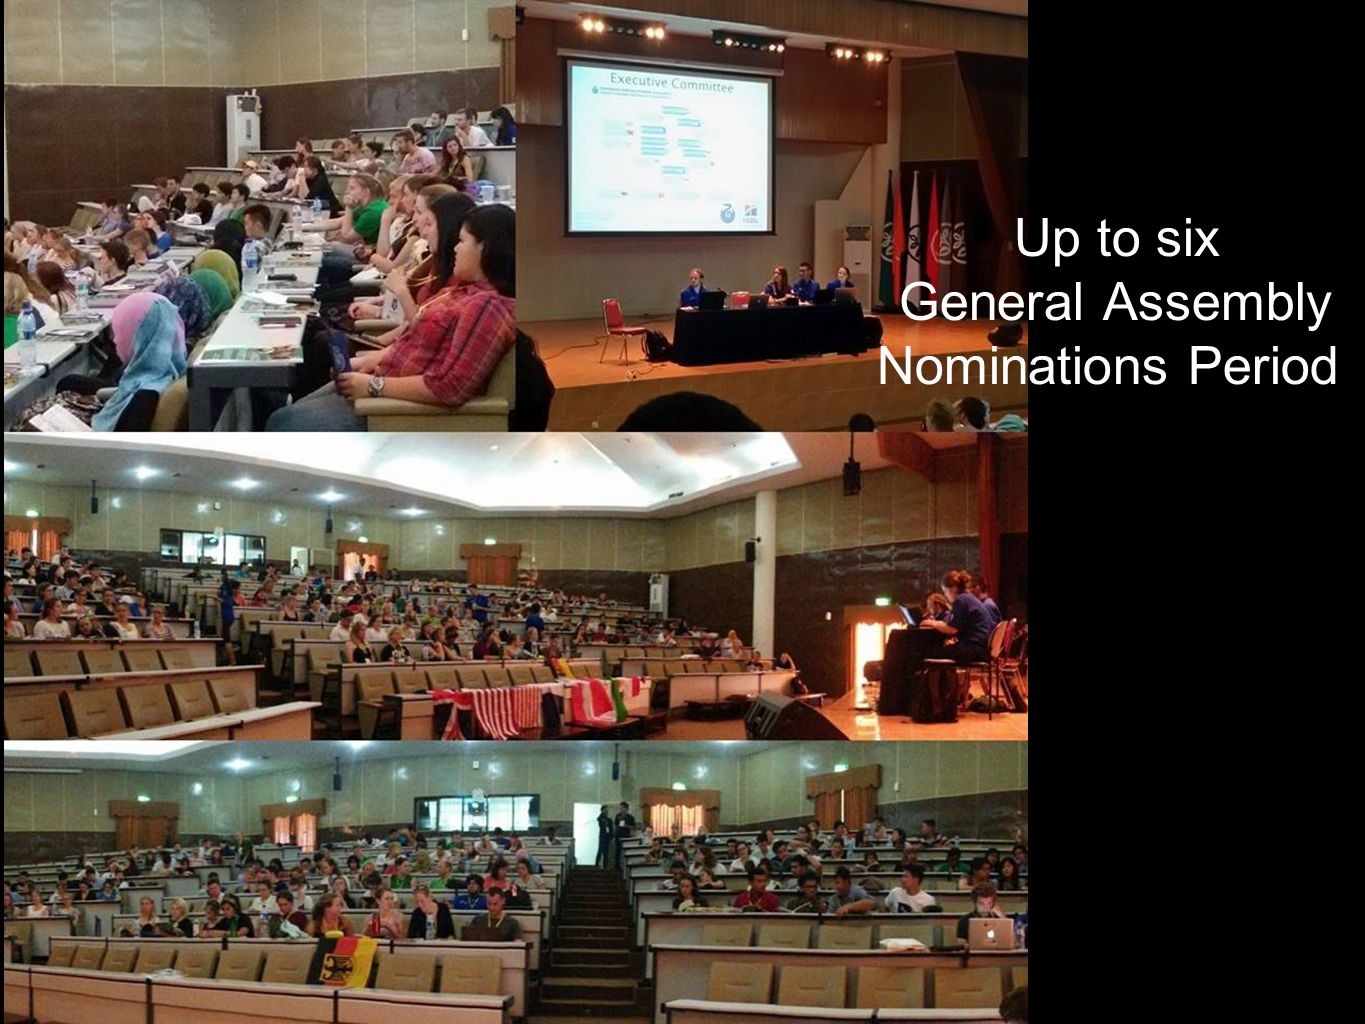 Up to six General Assembly Nominations Period